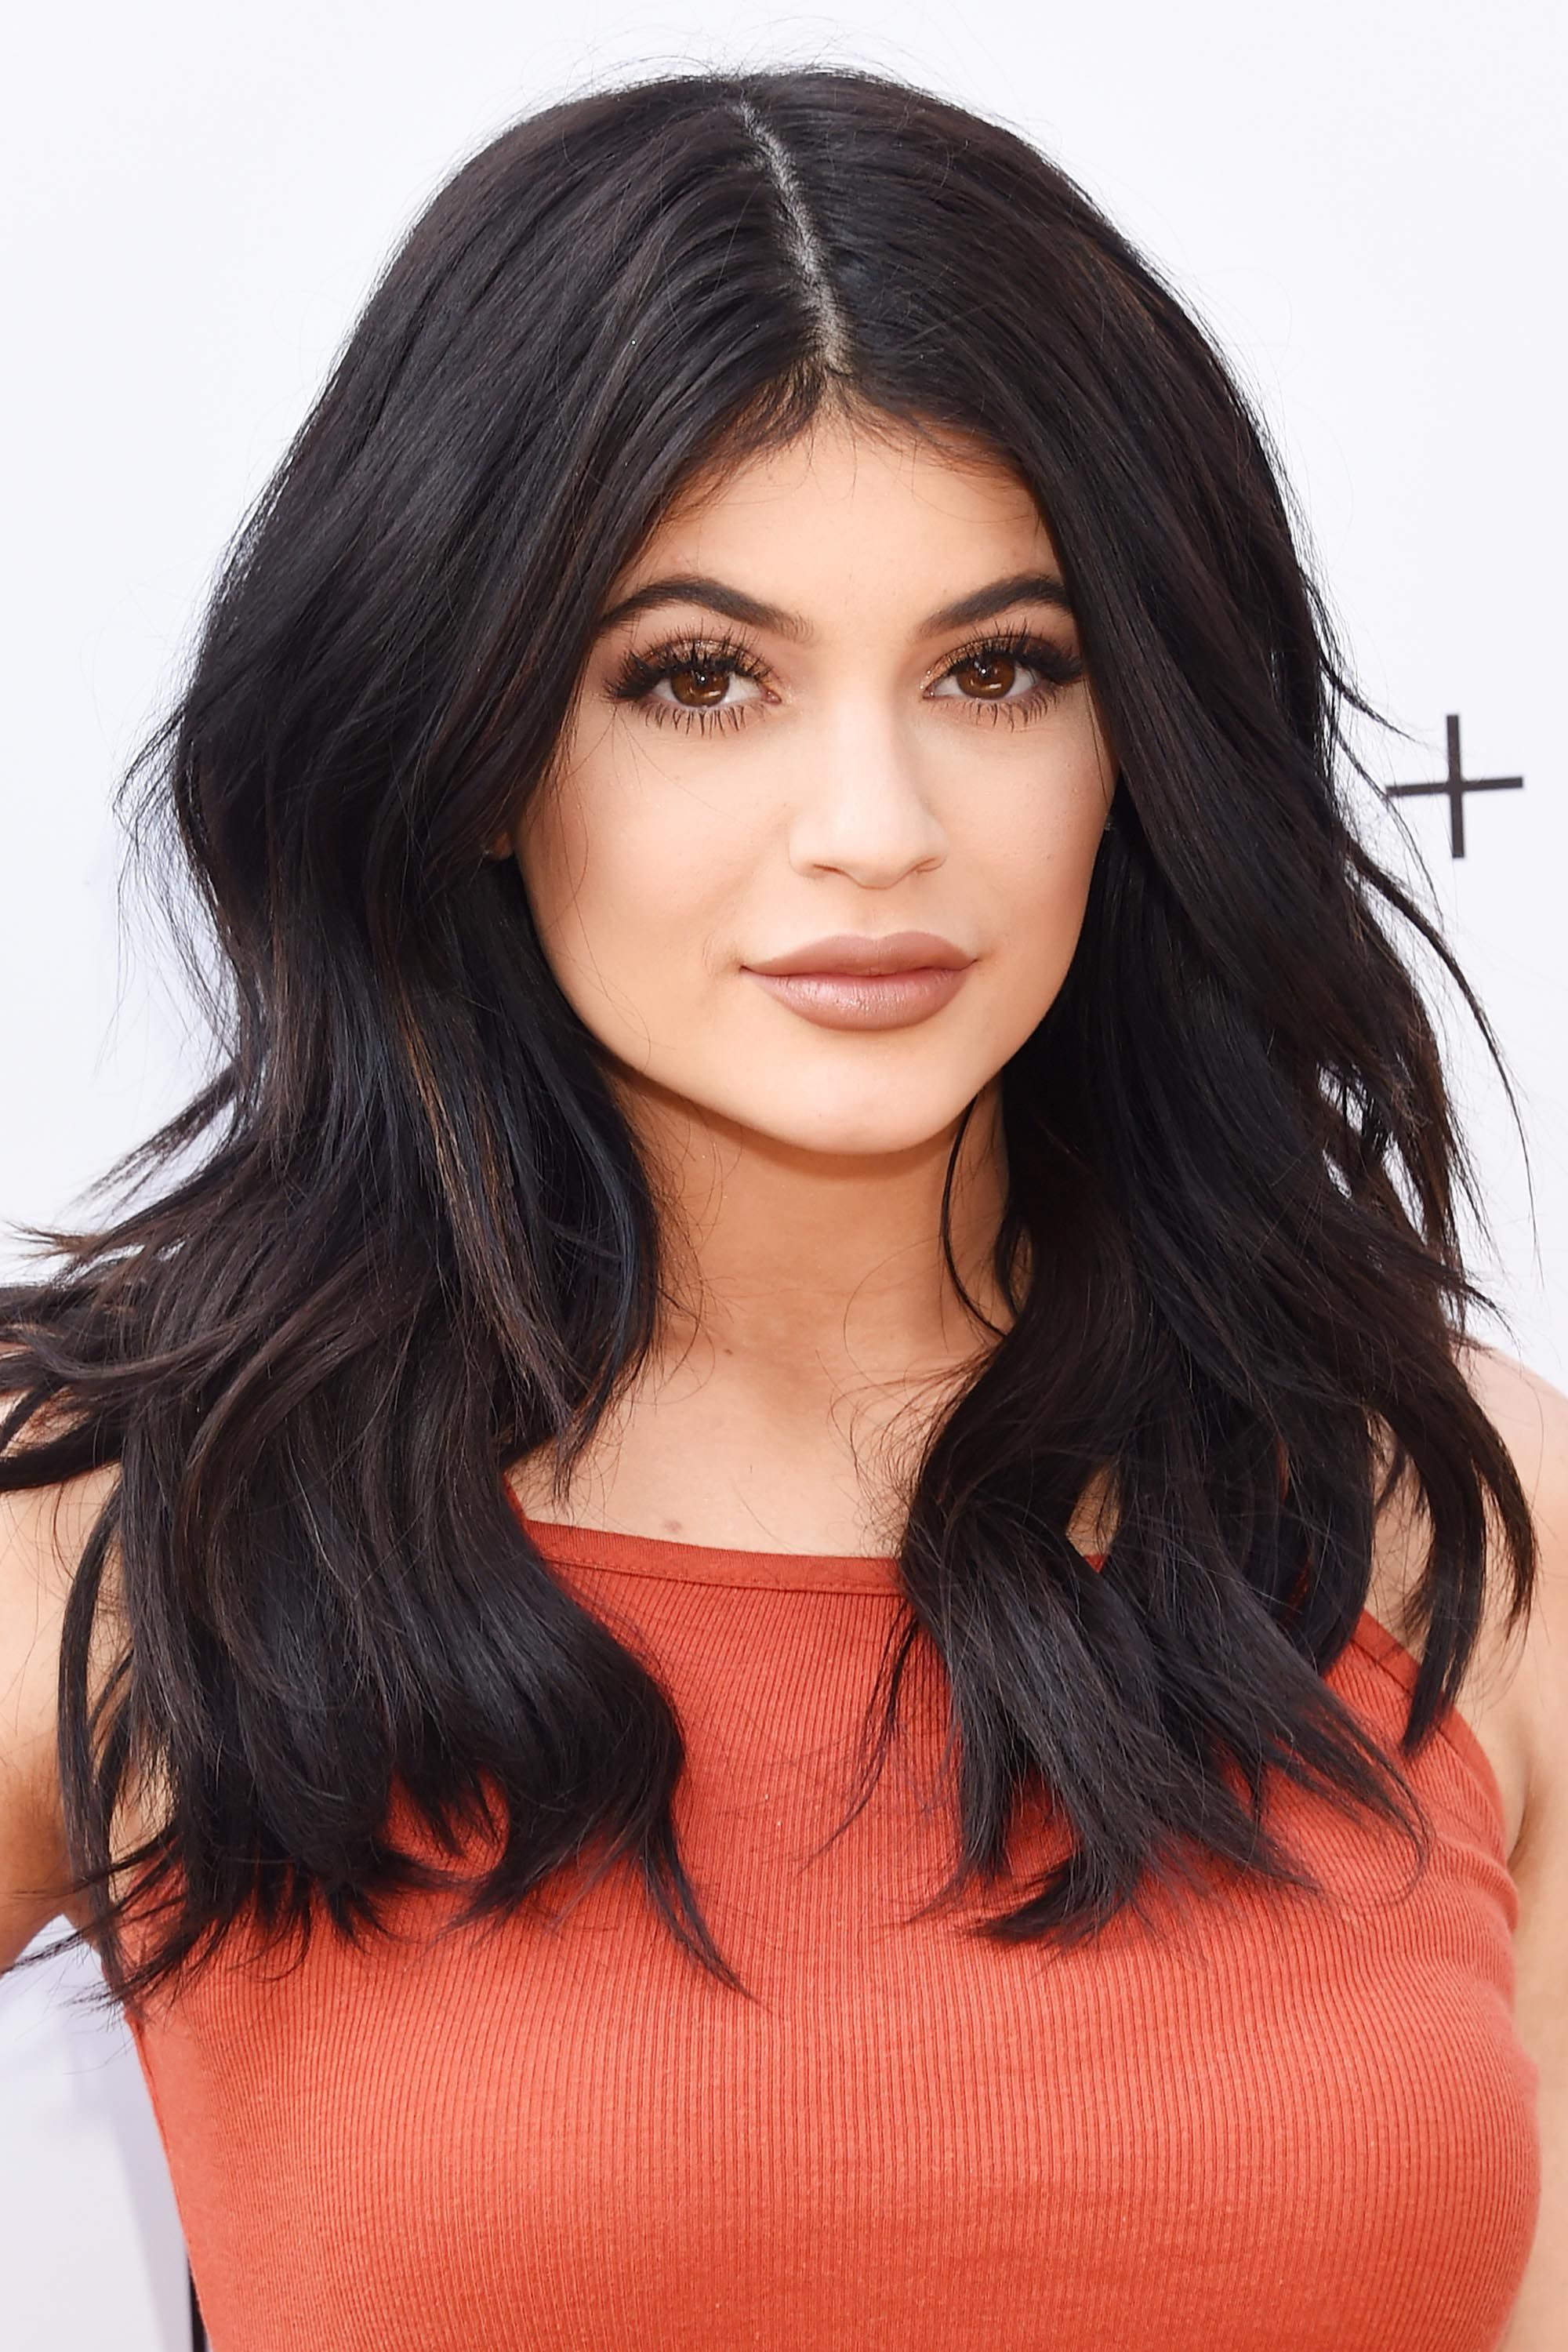 50 Best Kylie Jenner Hair Looks – The Best Hairstyles Of Kylie Jenner With Trendy Medium Haircuts Kris Jenner (View 2 of 20)